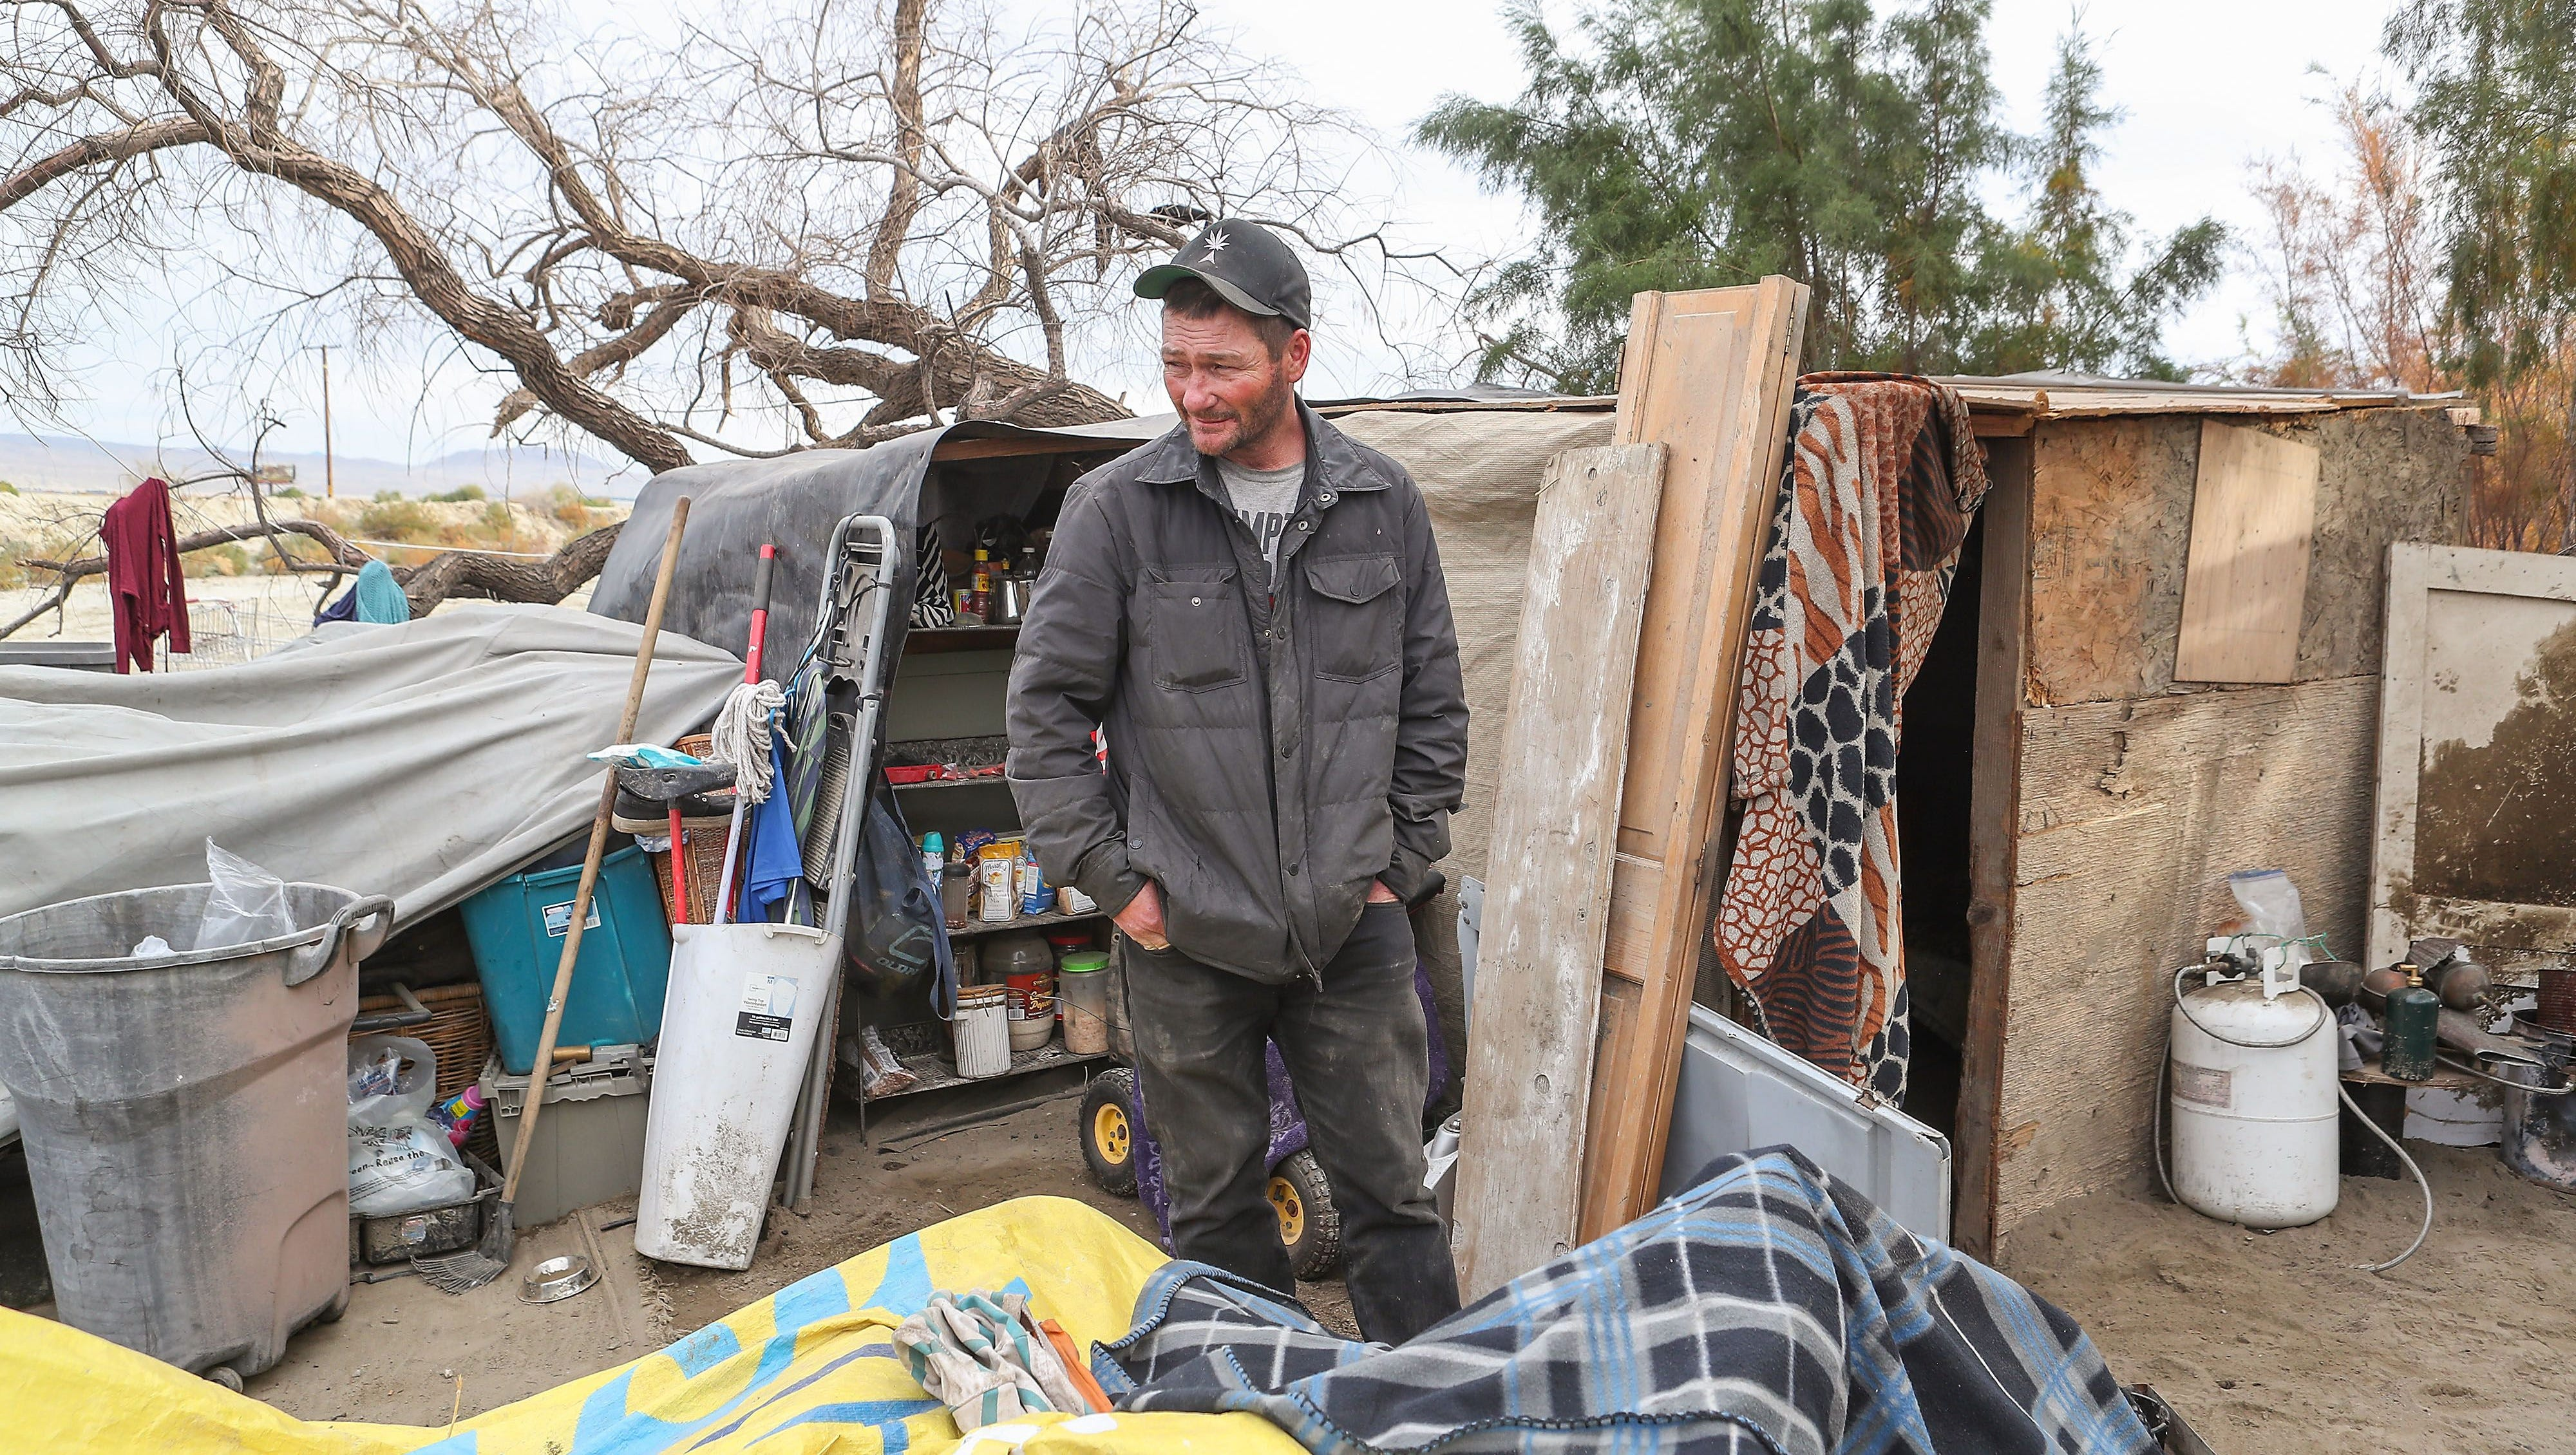 Homelessness in the valley: Watch the stories of a California encampment community displaced